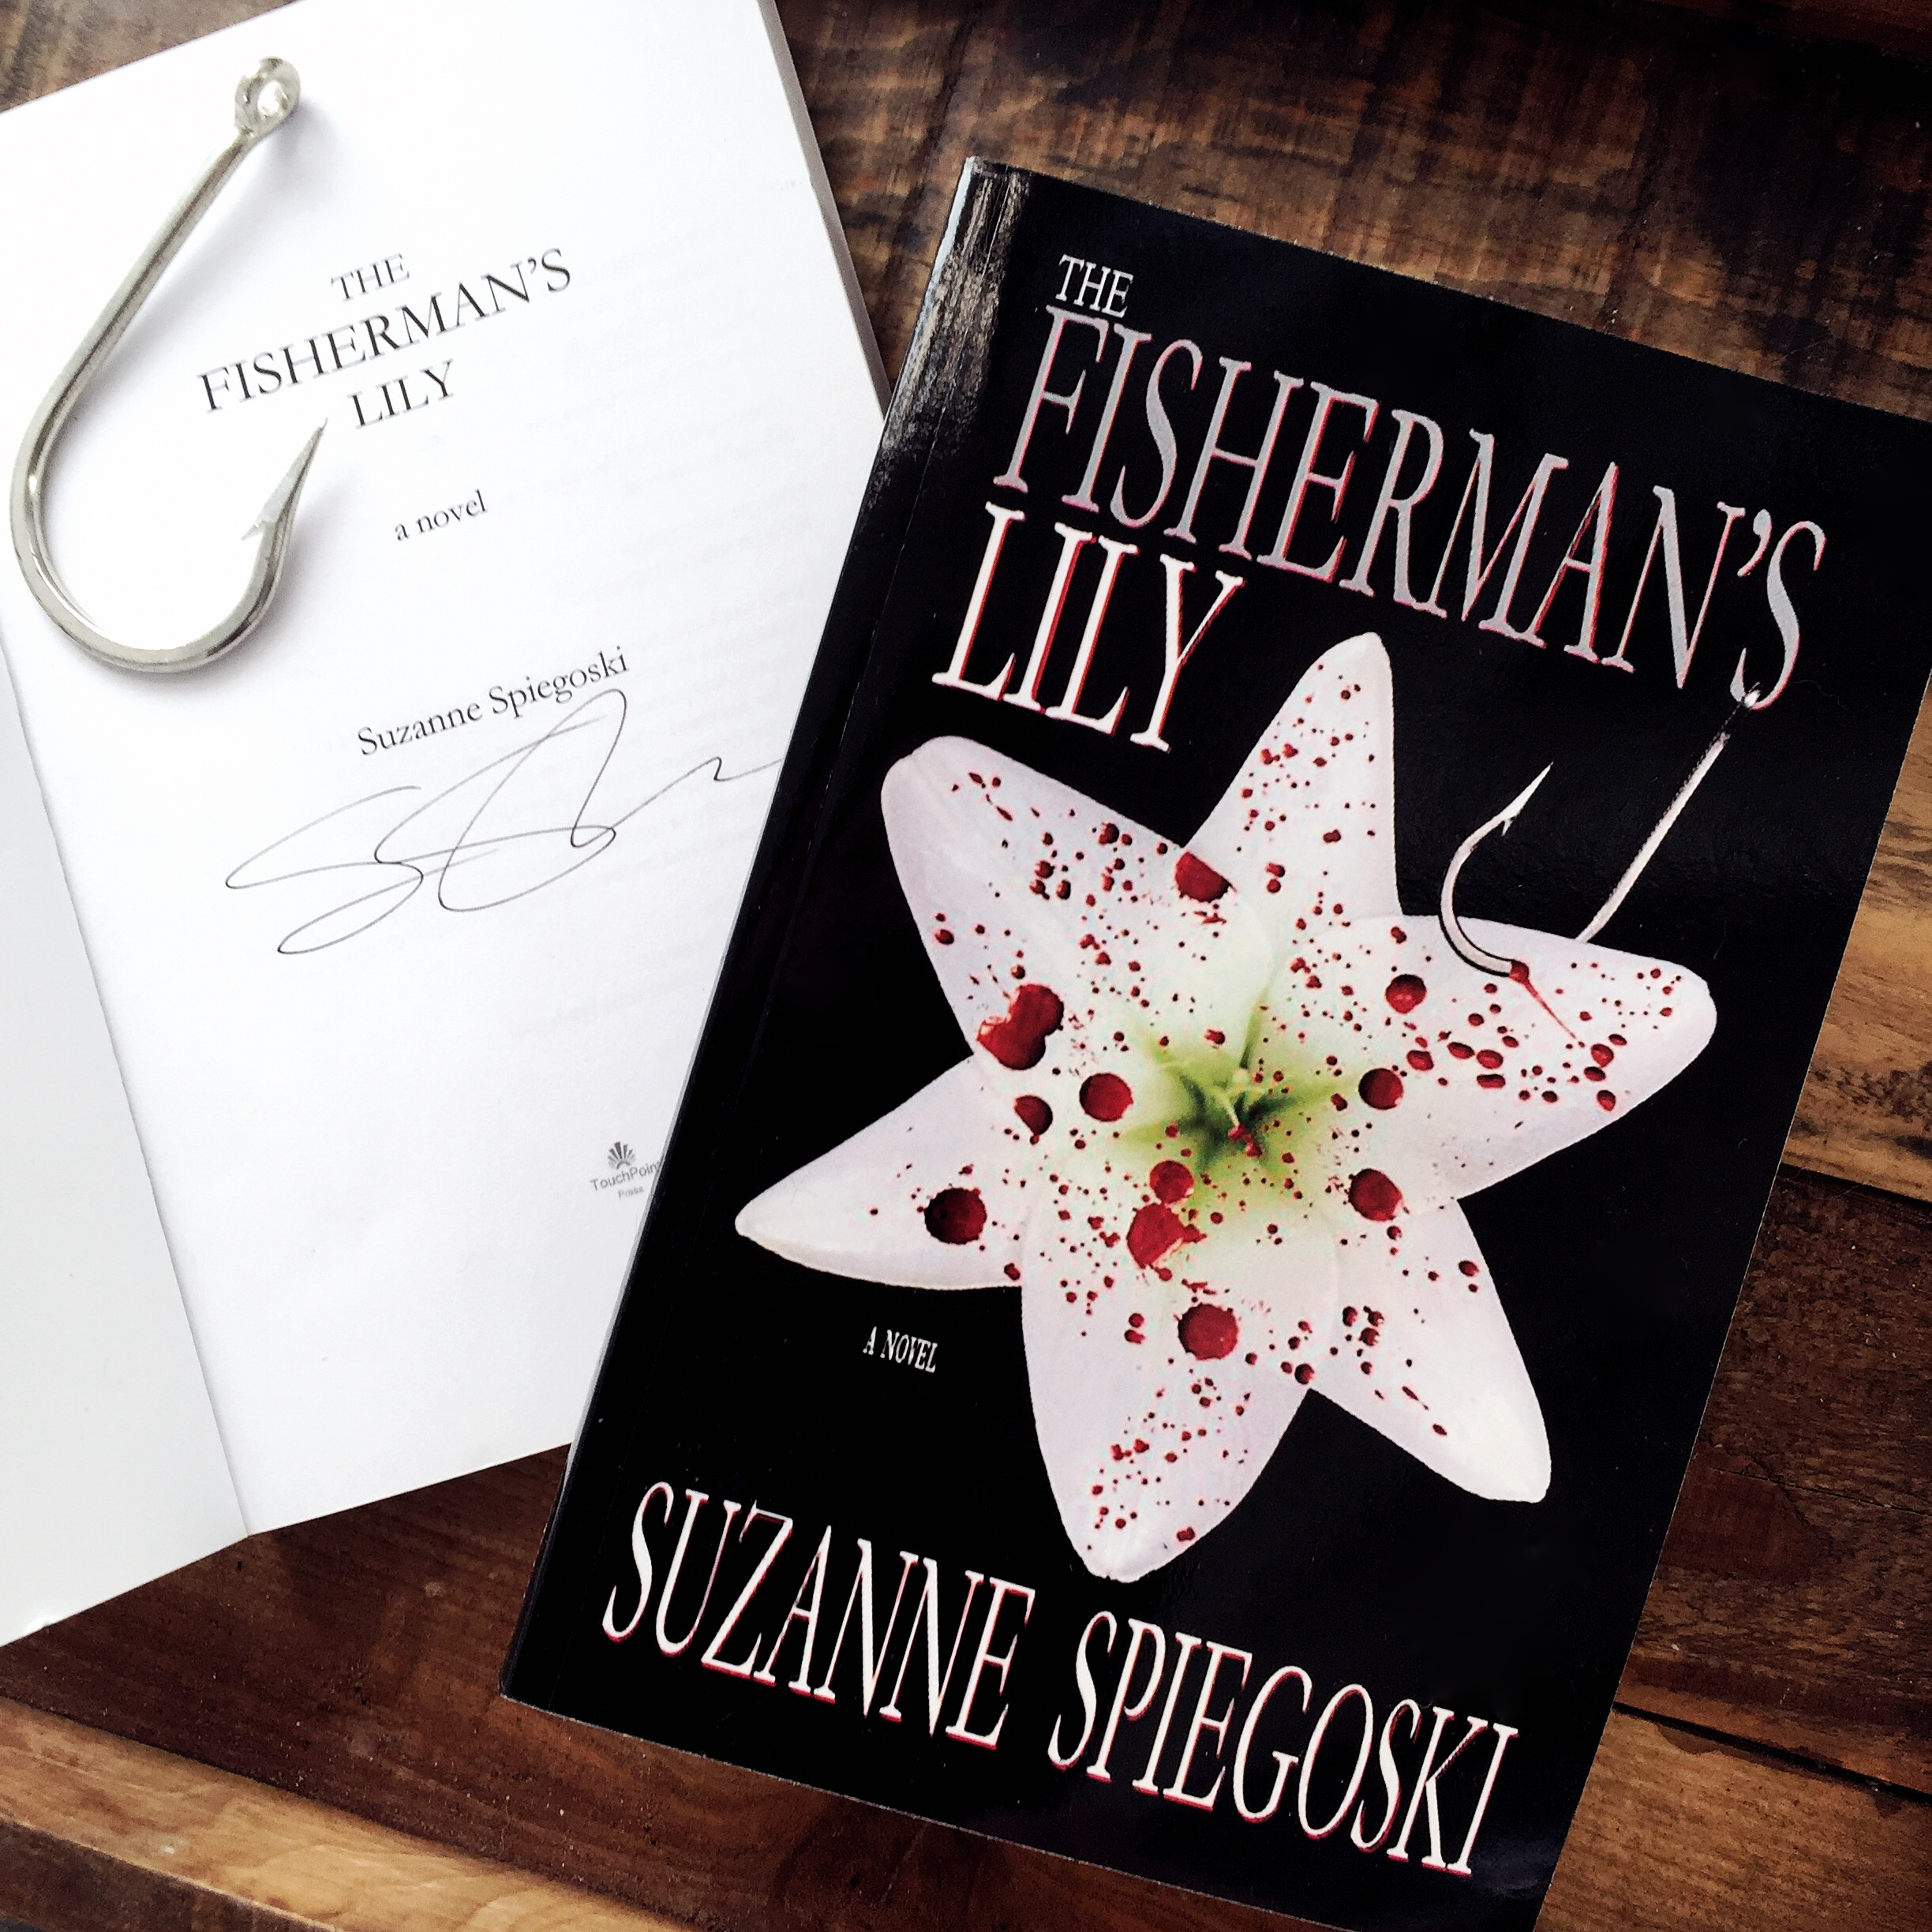 Enter your chance to win a free signed copy of  The Fisherman's Lily  on   Instagram   NOW!